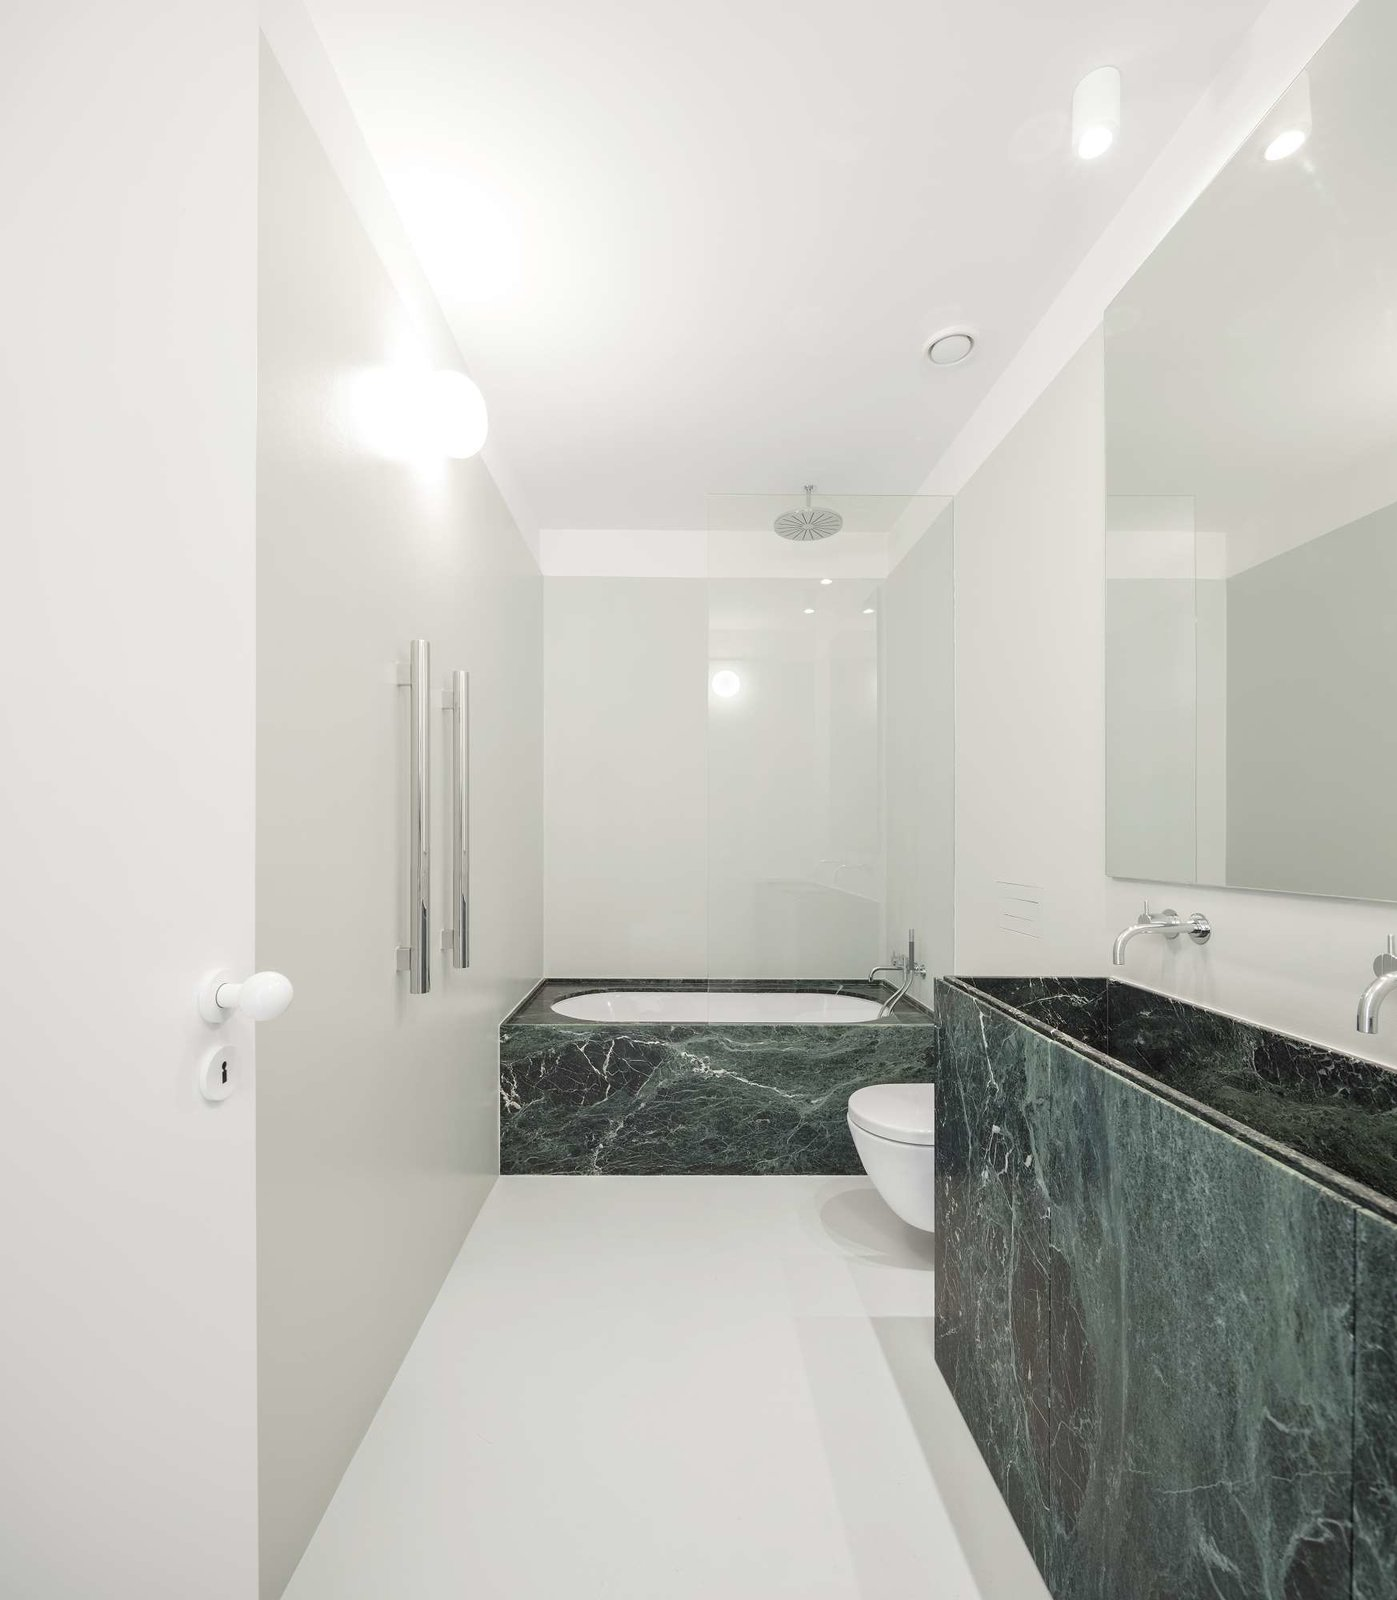 Bath Room, Undermount Sink, Undermount Tub, Stone Counter, Ceiling Lighting, Wall Lighting, One Piece Toilet, Open Shower, and Marble Counter  Photo 8 of 16 in A Luminous Renovation in Portugal Creates a Bright and Airy Apartment